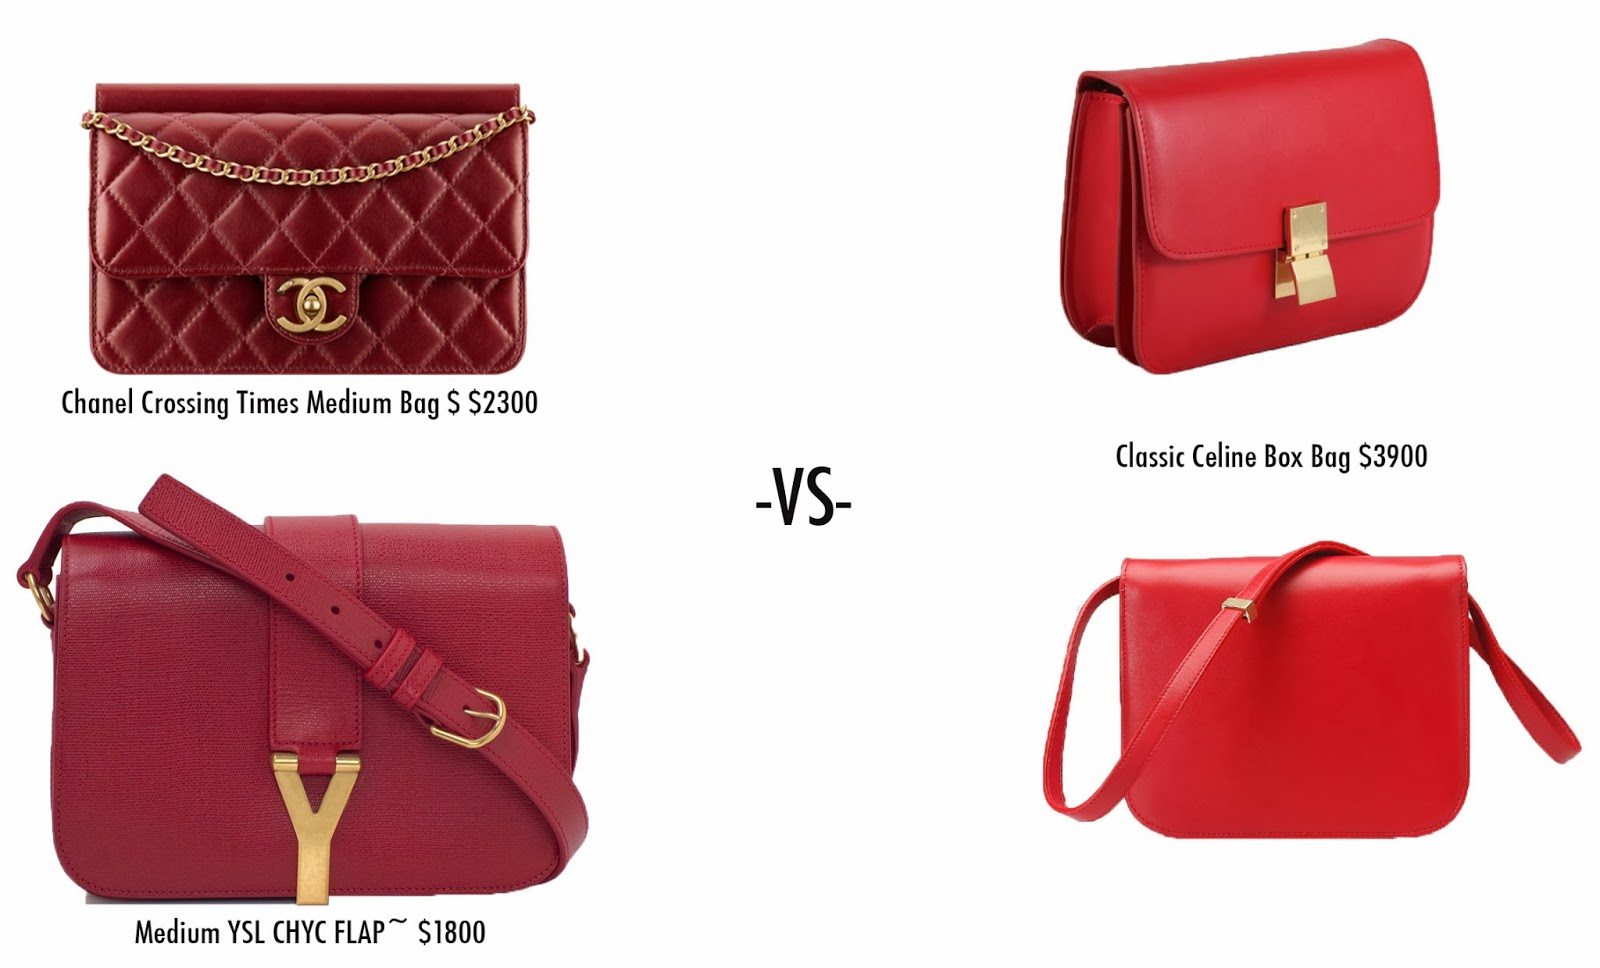 Celine Box Bag | Nouvelle Chic